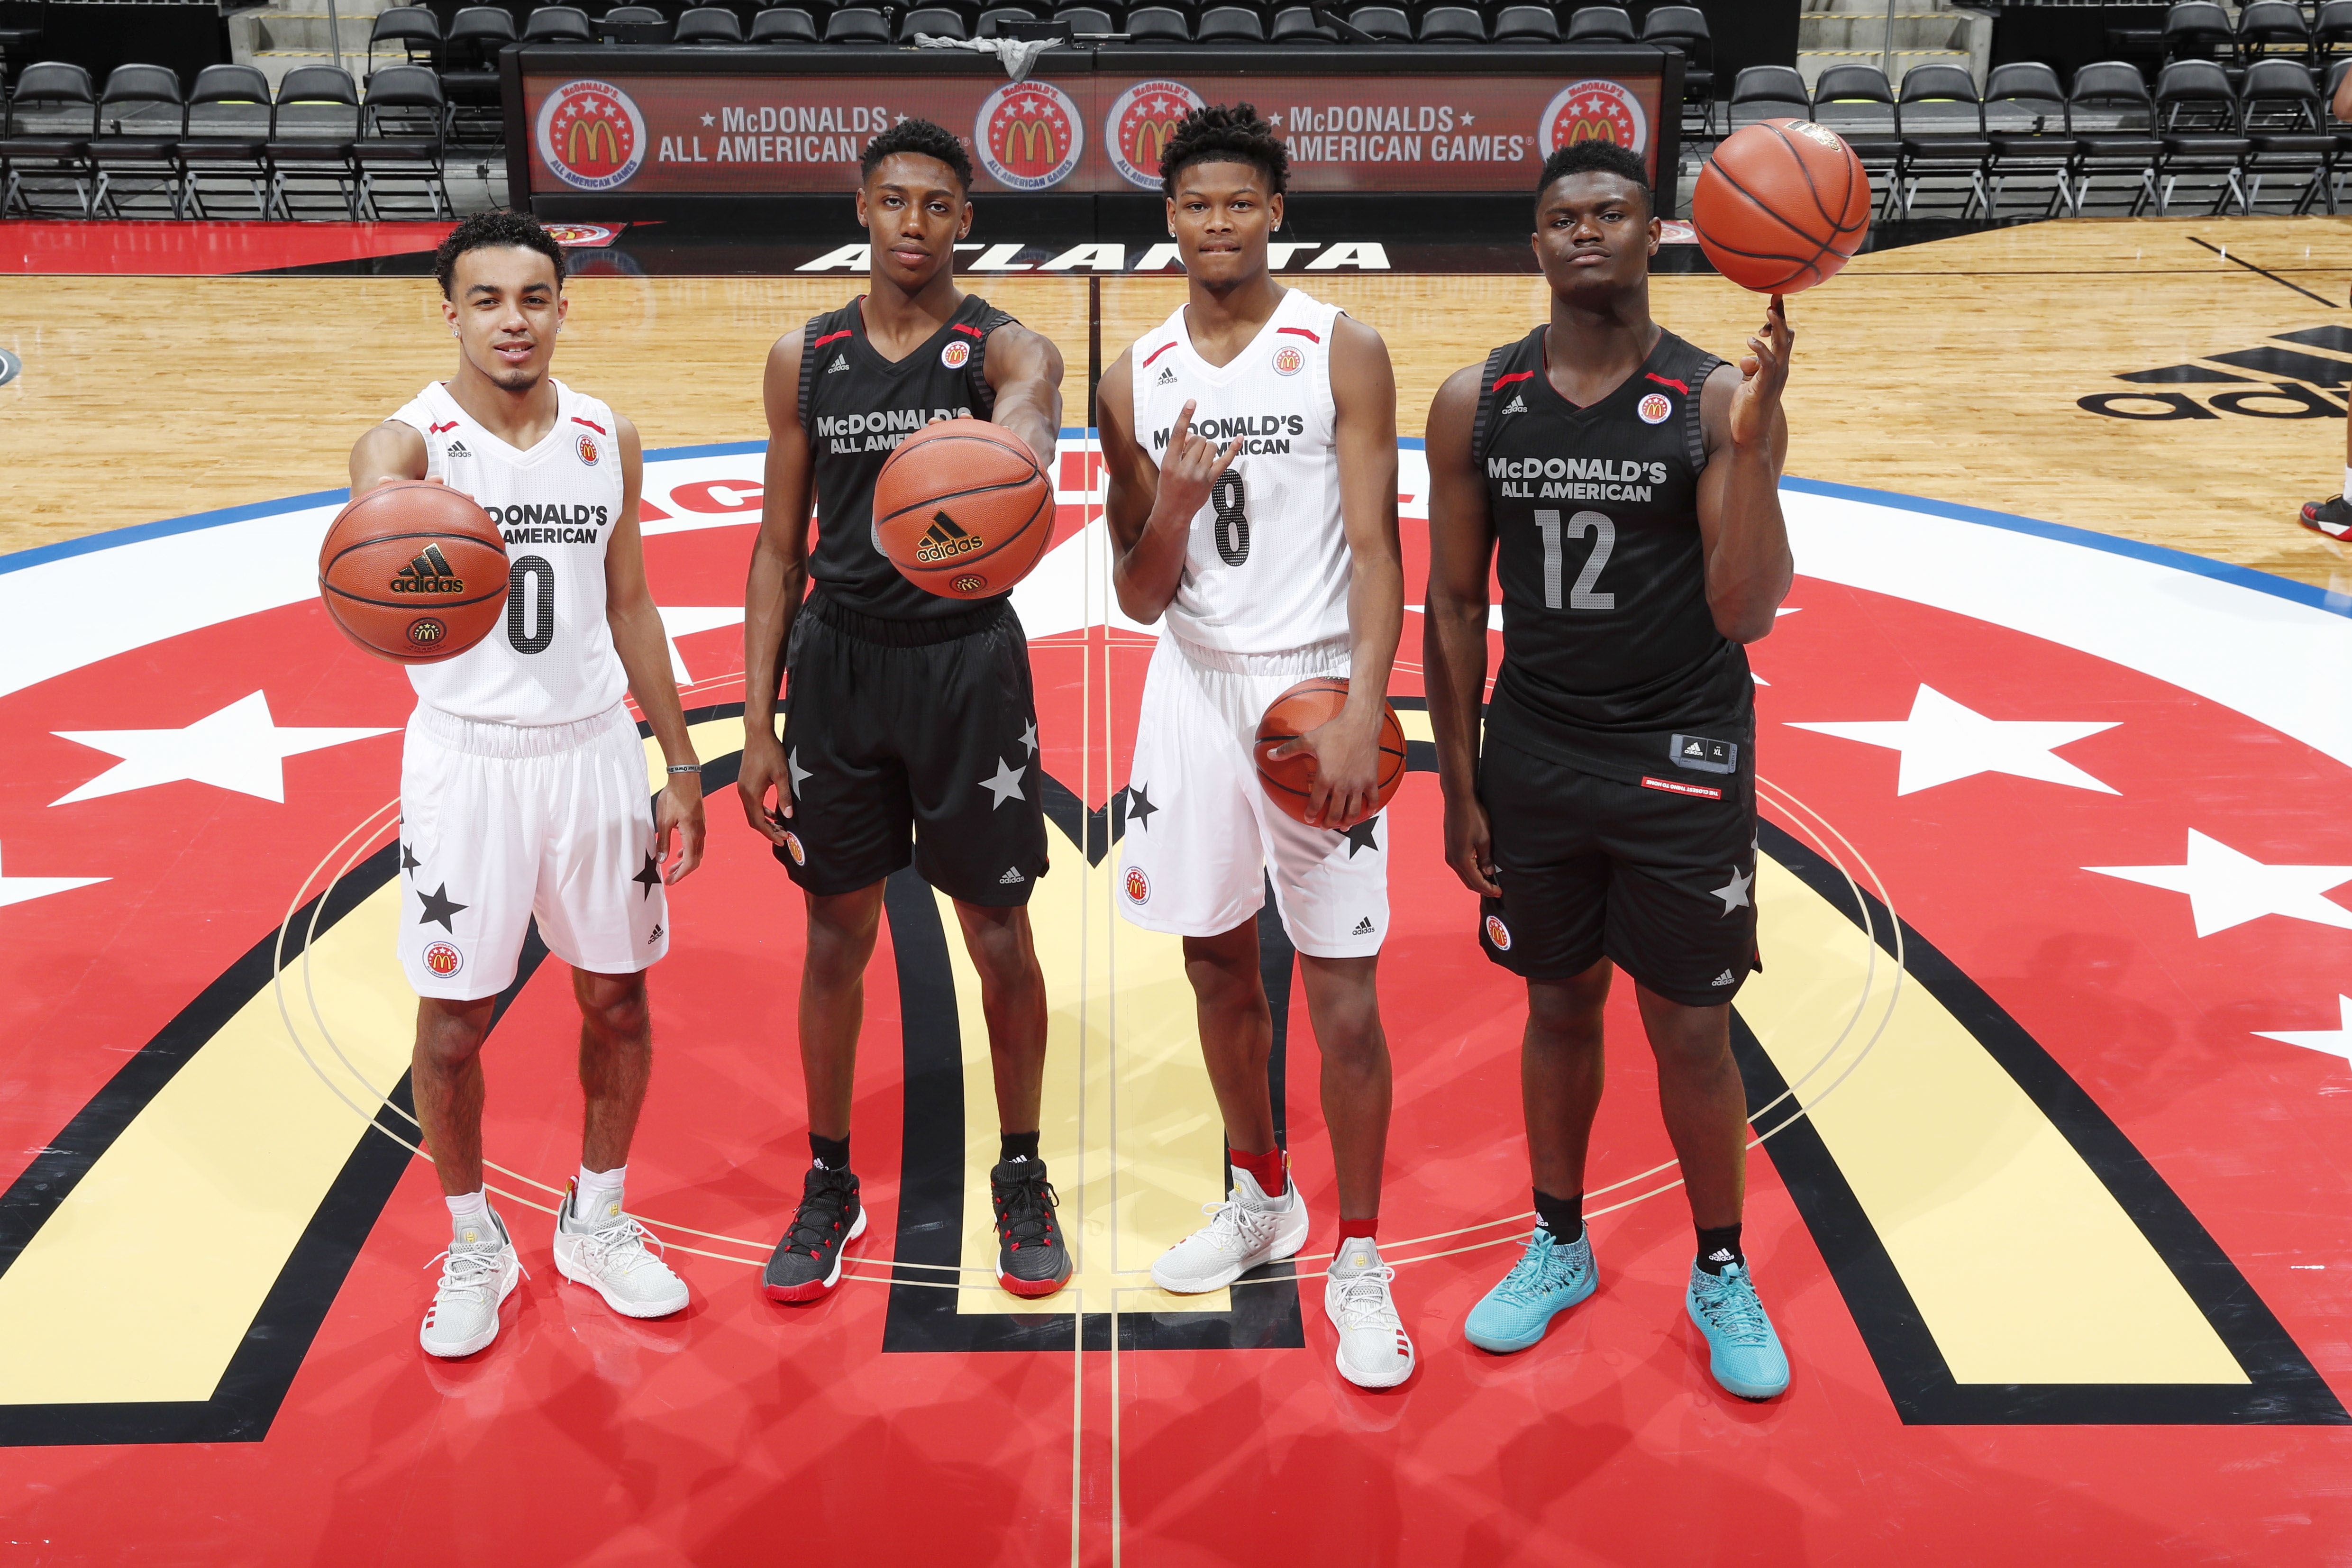 reputable site 86c4f cad99 NBA Apparel 2018 McDonalds All American Game - Peachtree Hoo